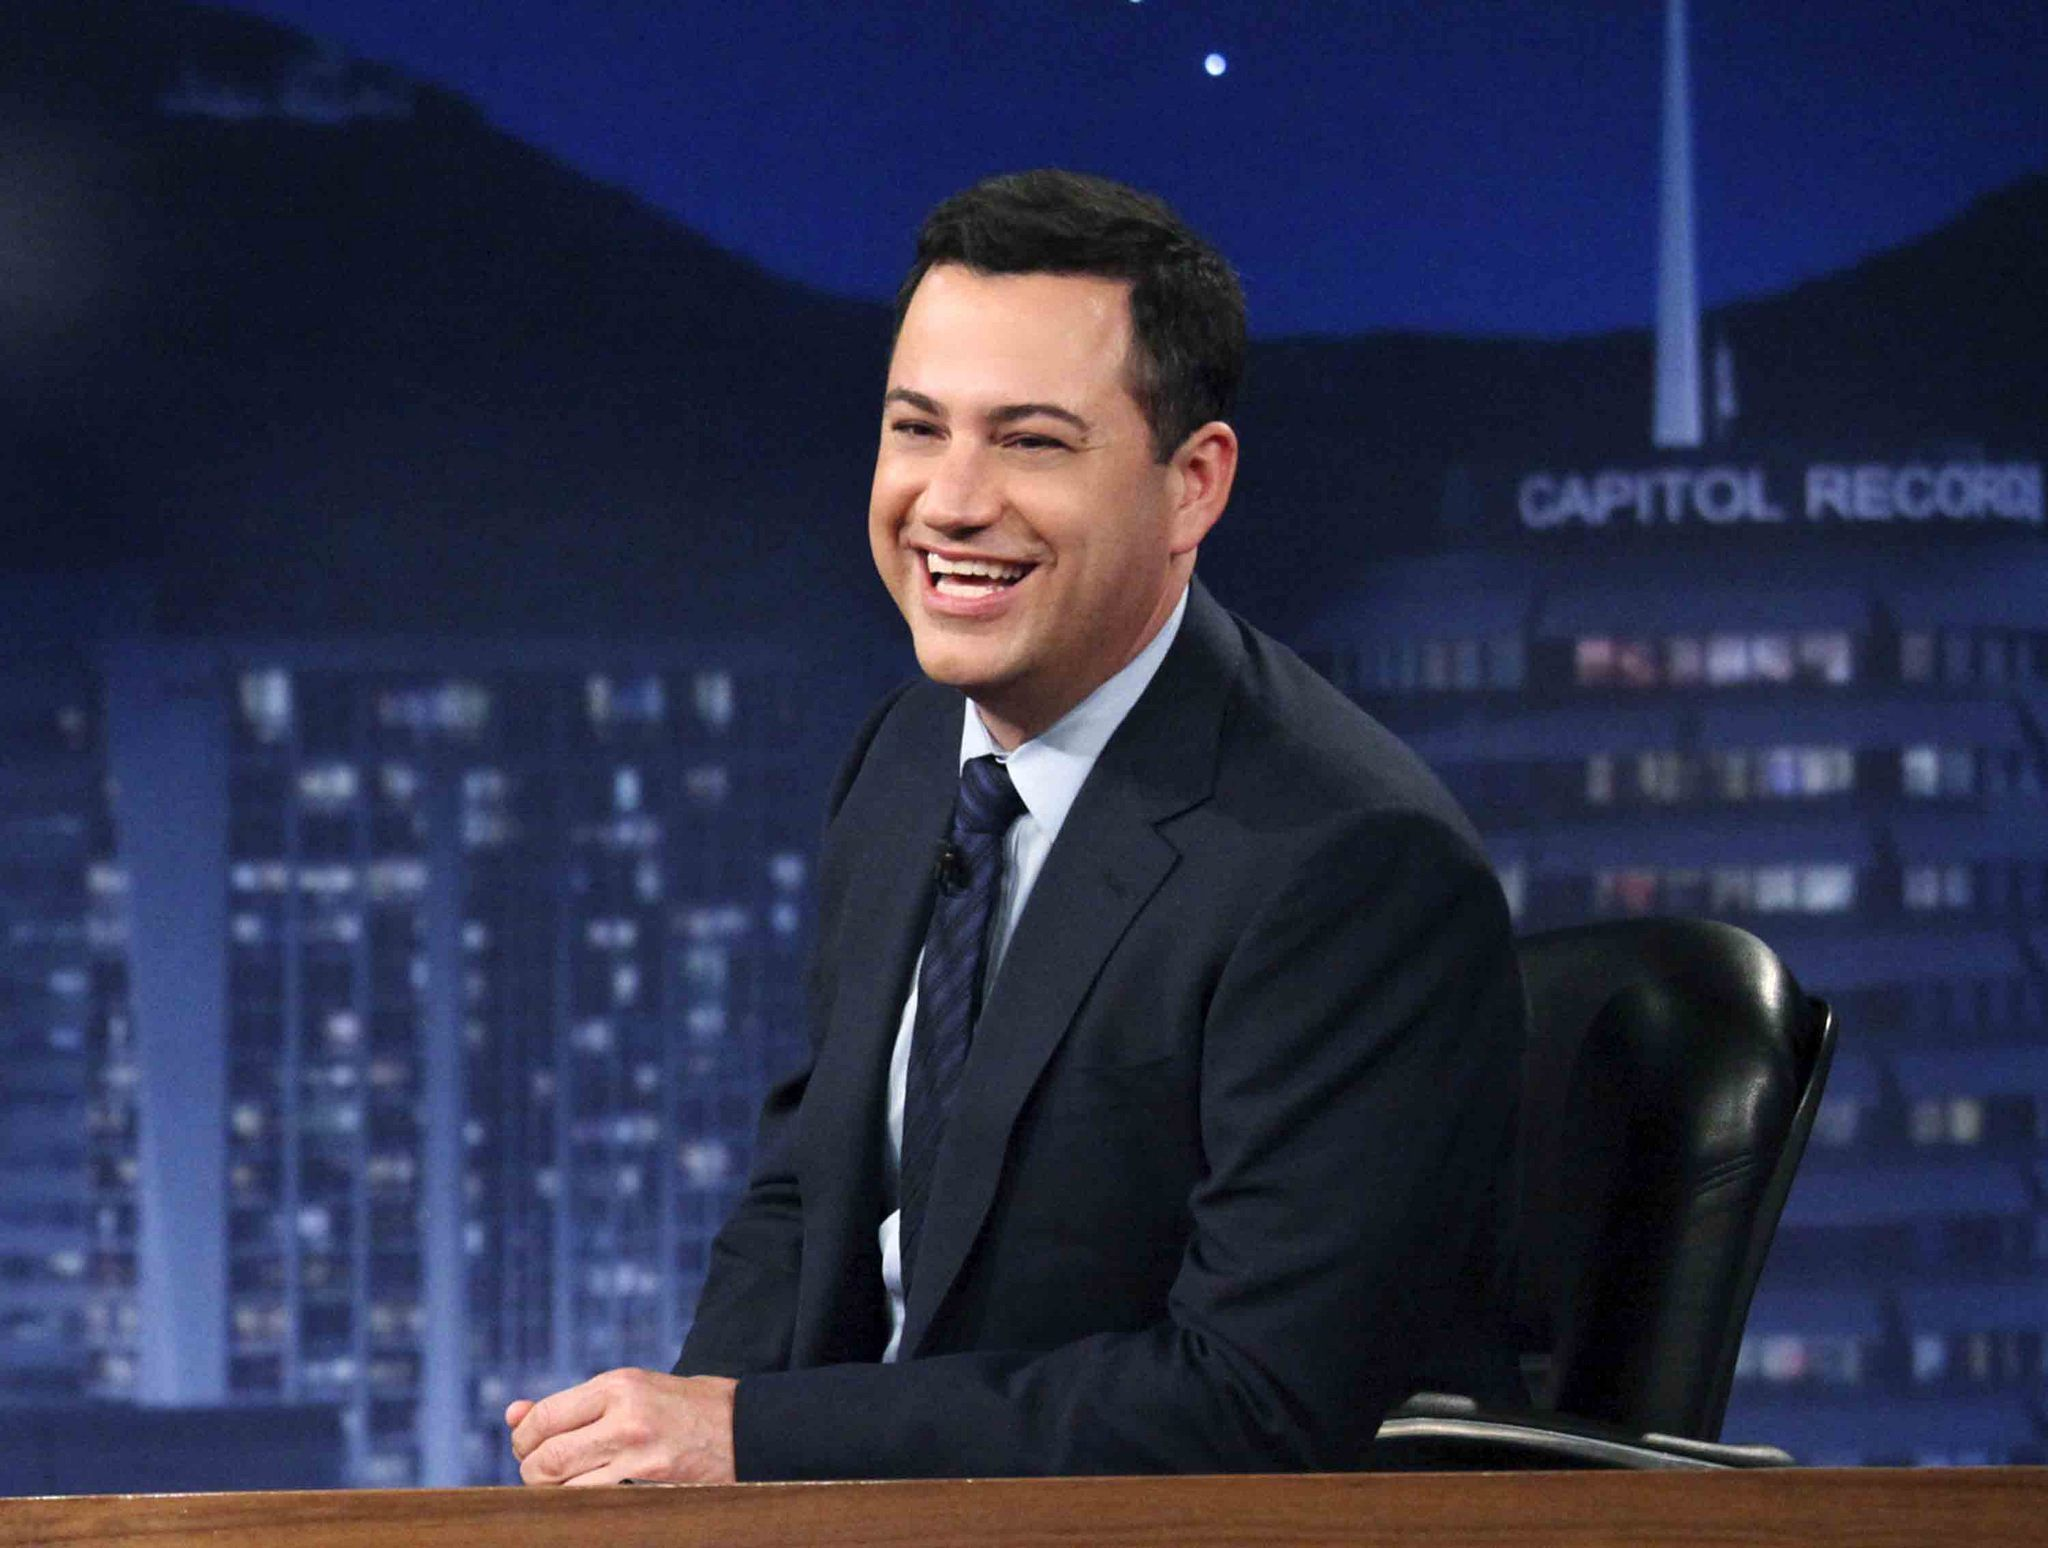 jimmy kimmel gives a sly thumbs-down to circumcision | intactivist